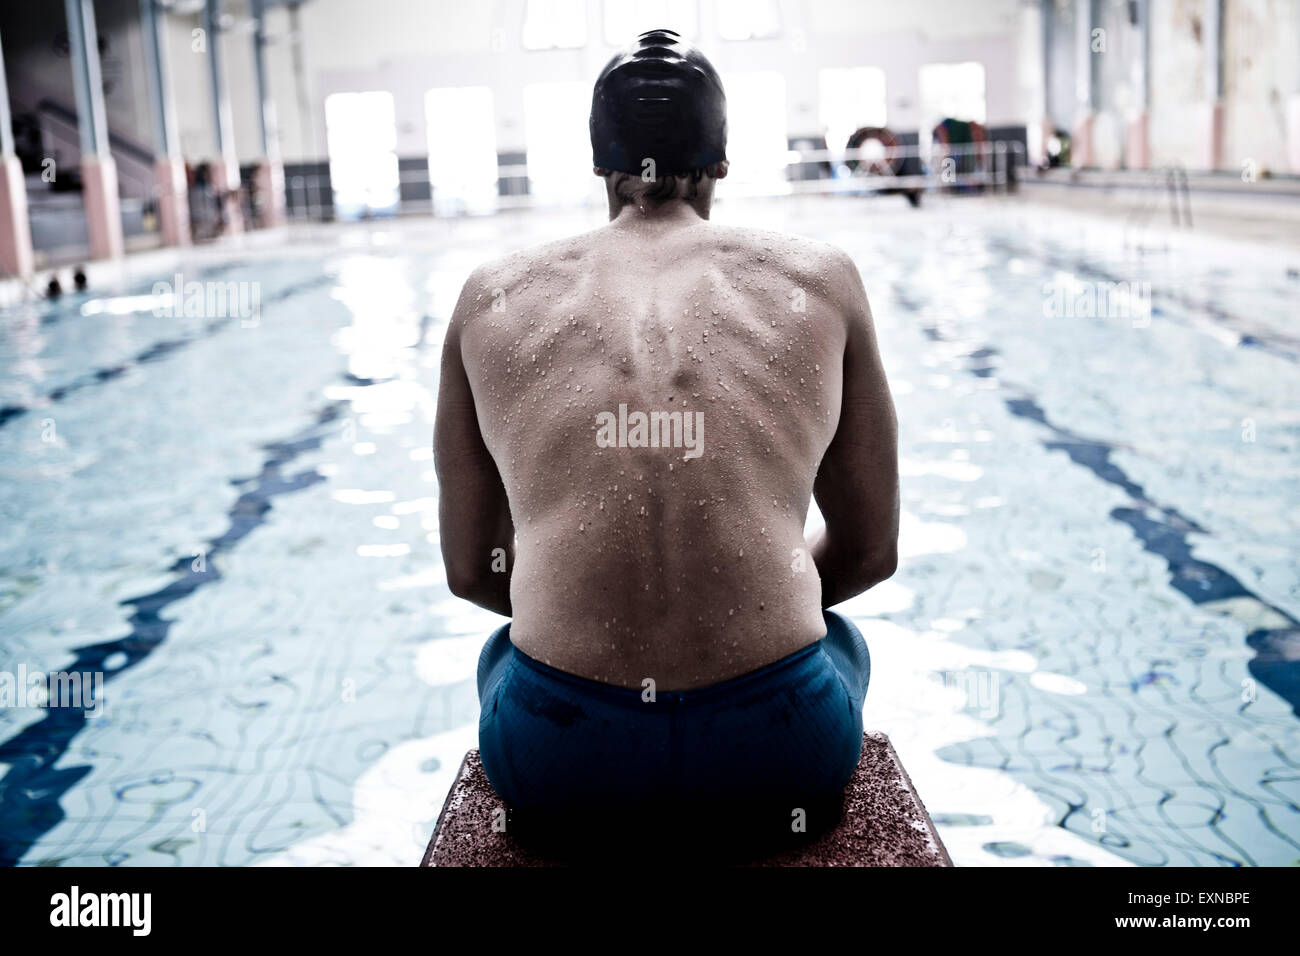 Swimmer in indoor pool sitting on starting block - Stock Image